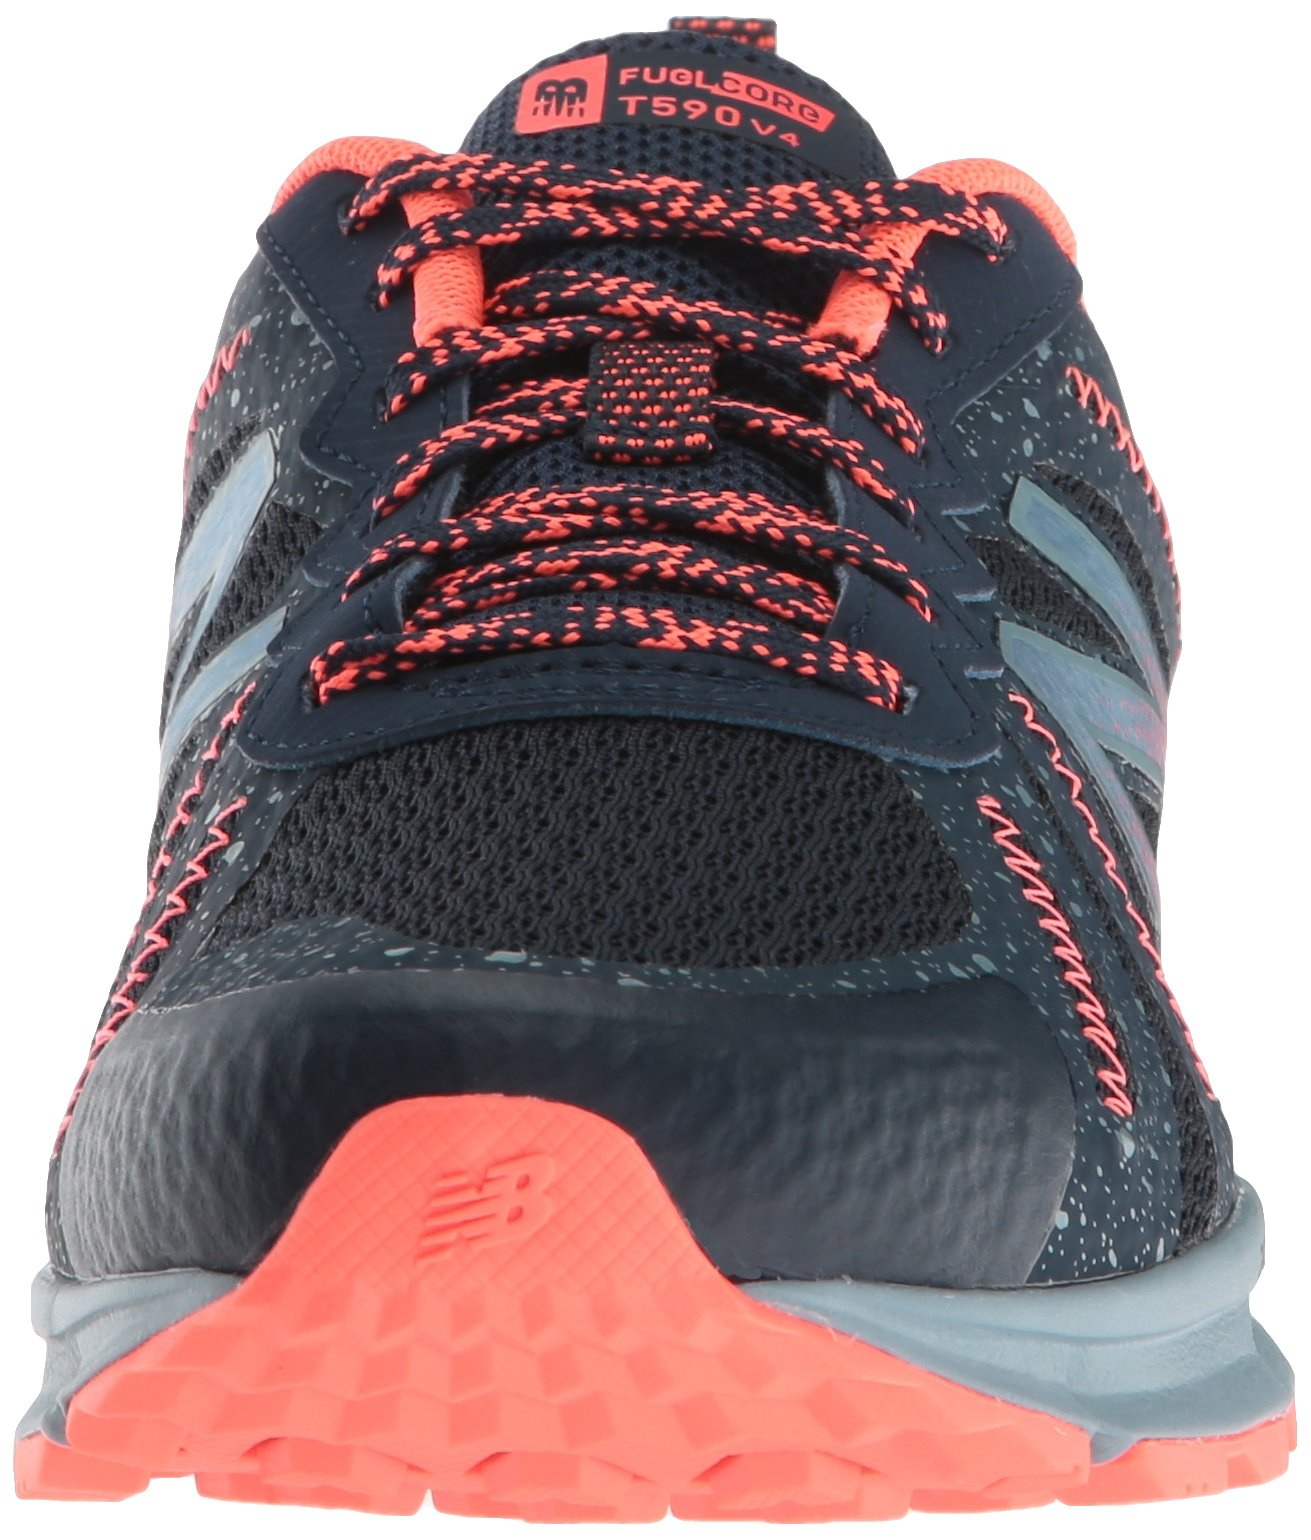 New Balance Women's 590v4 FuelCore Trail Running Shoe, Galaxy, 5.5 B US by New Balance (Image #4)